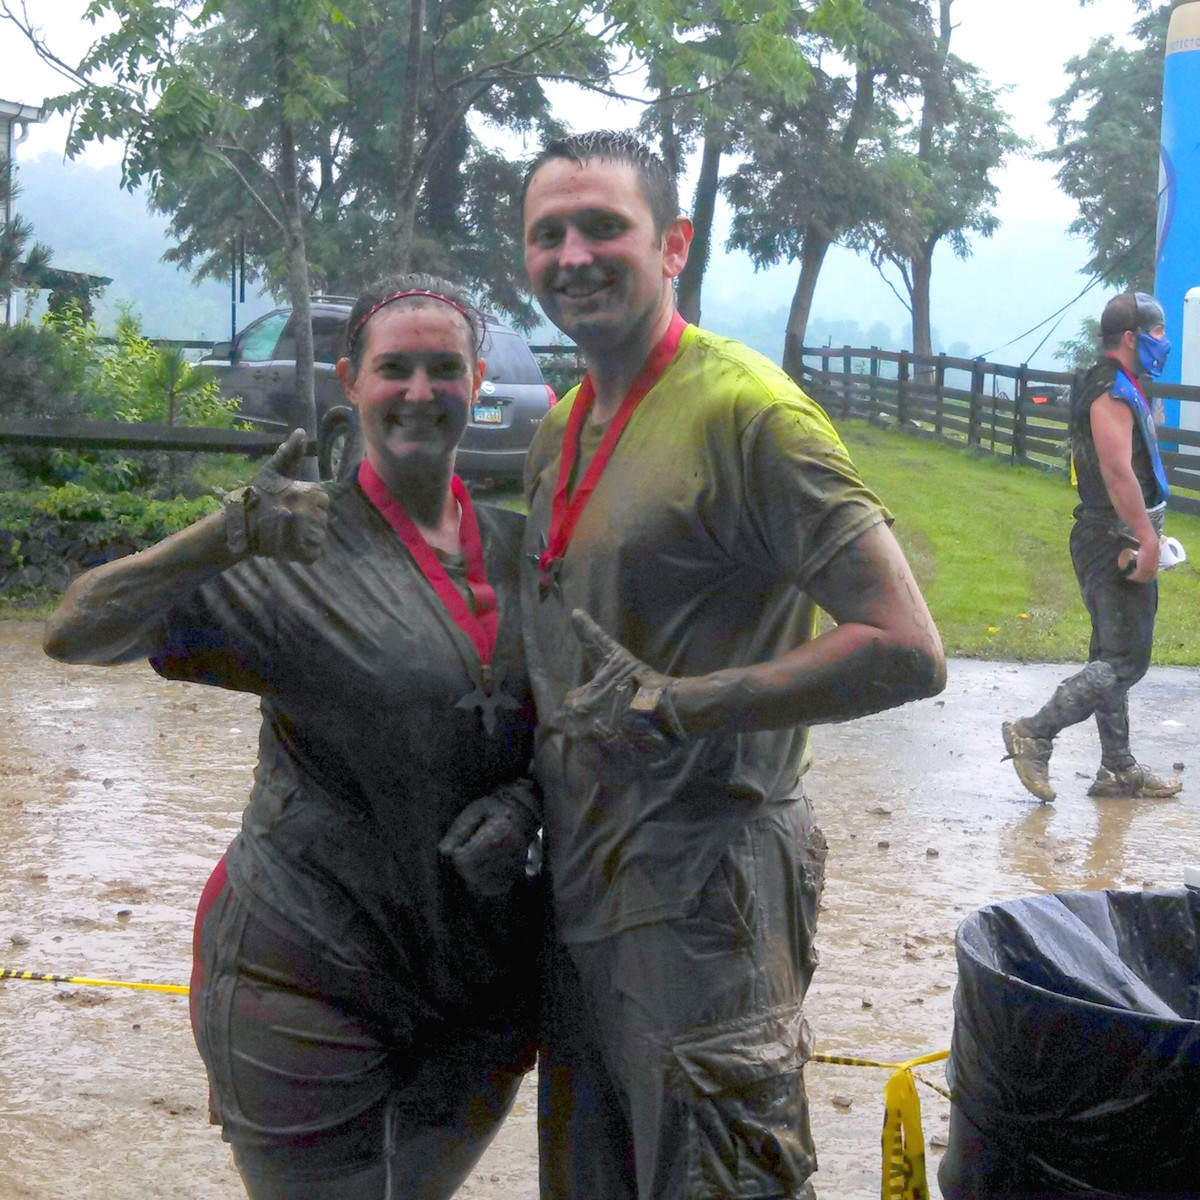 Feeling proud of ourselves. Wait, is that THE Mud Ninja in the background?!